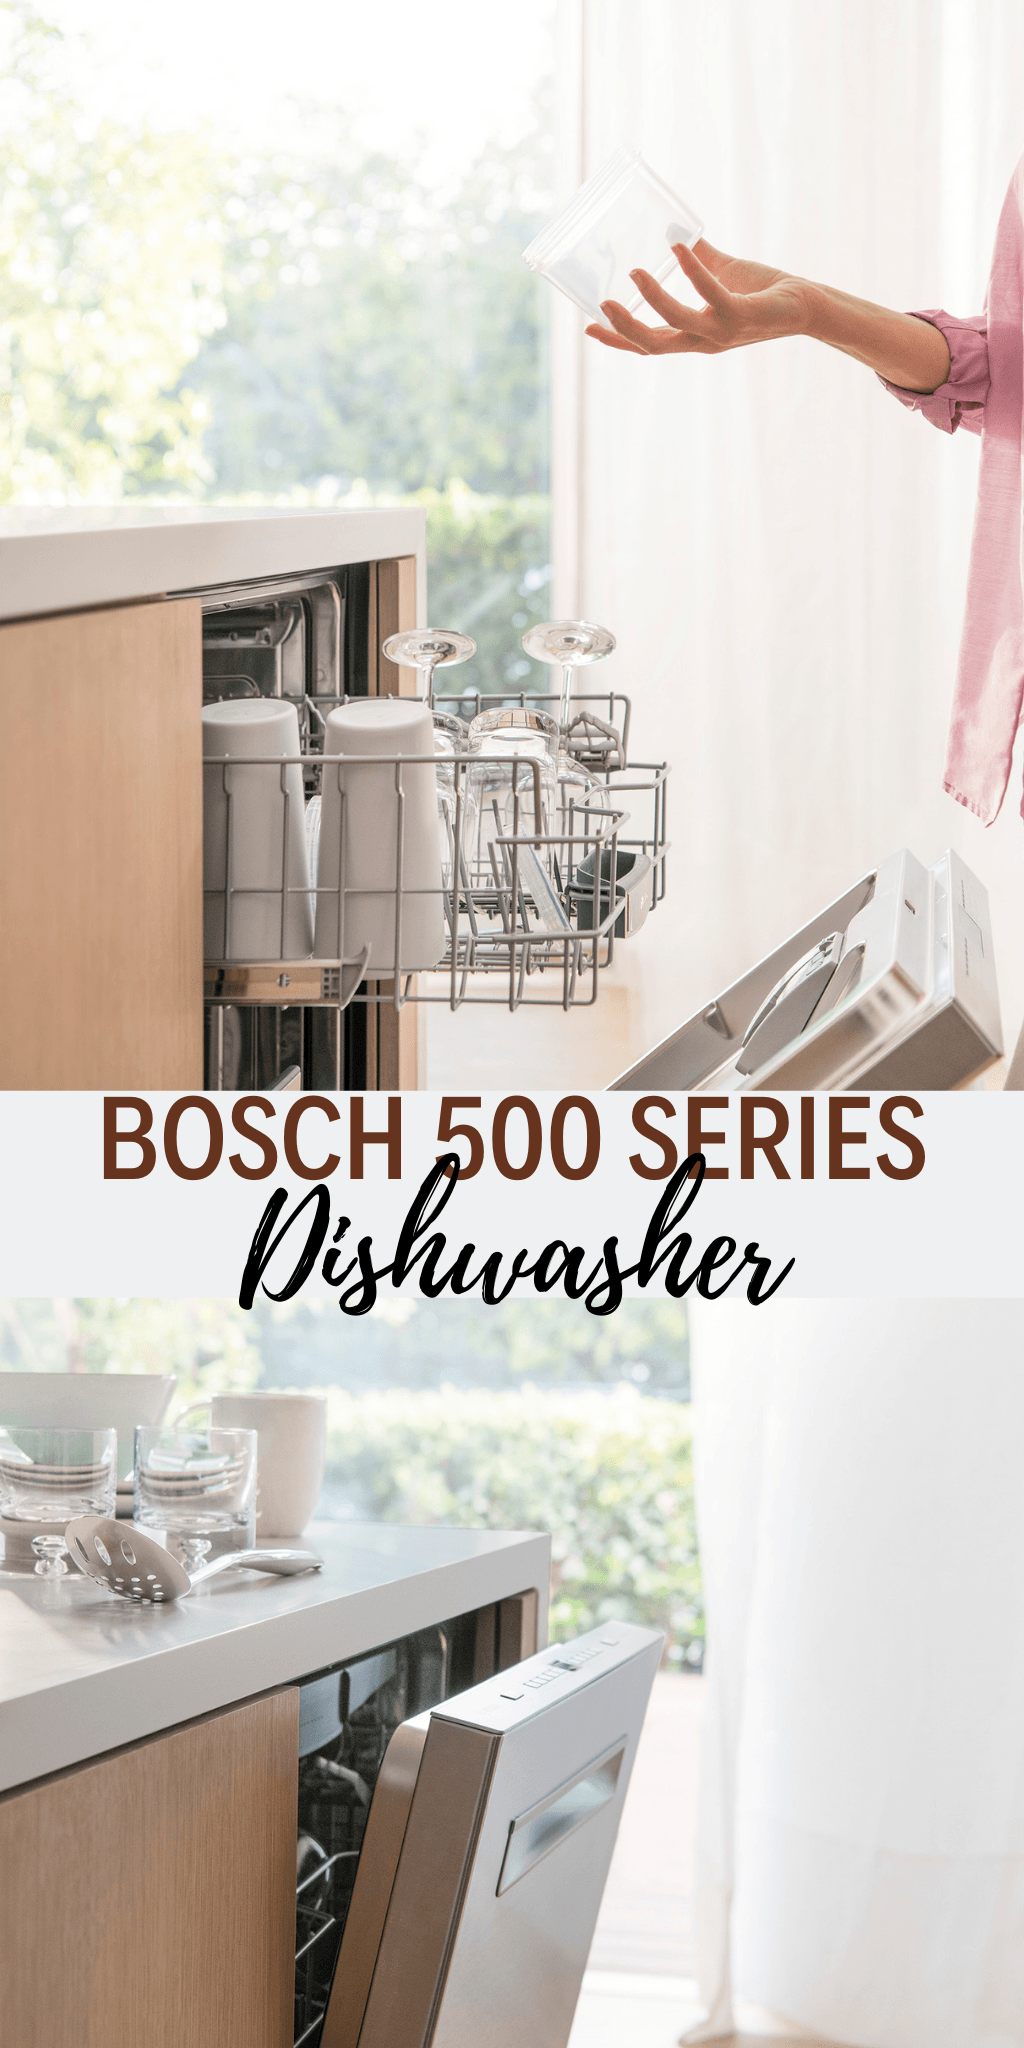 Only the Bosch 500 Series Dishwasher with AutoAir from Best Buy opens the door at the end of the cycle to let moisture escape! And has a sanitize option!